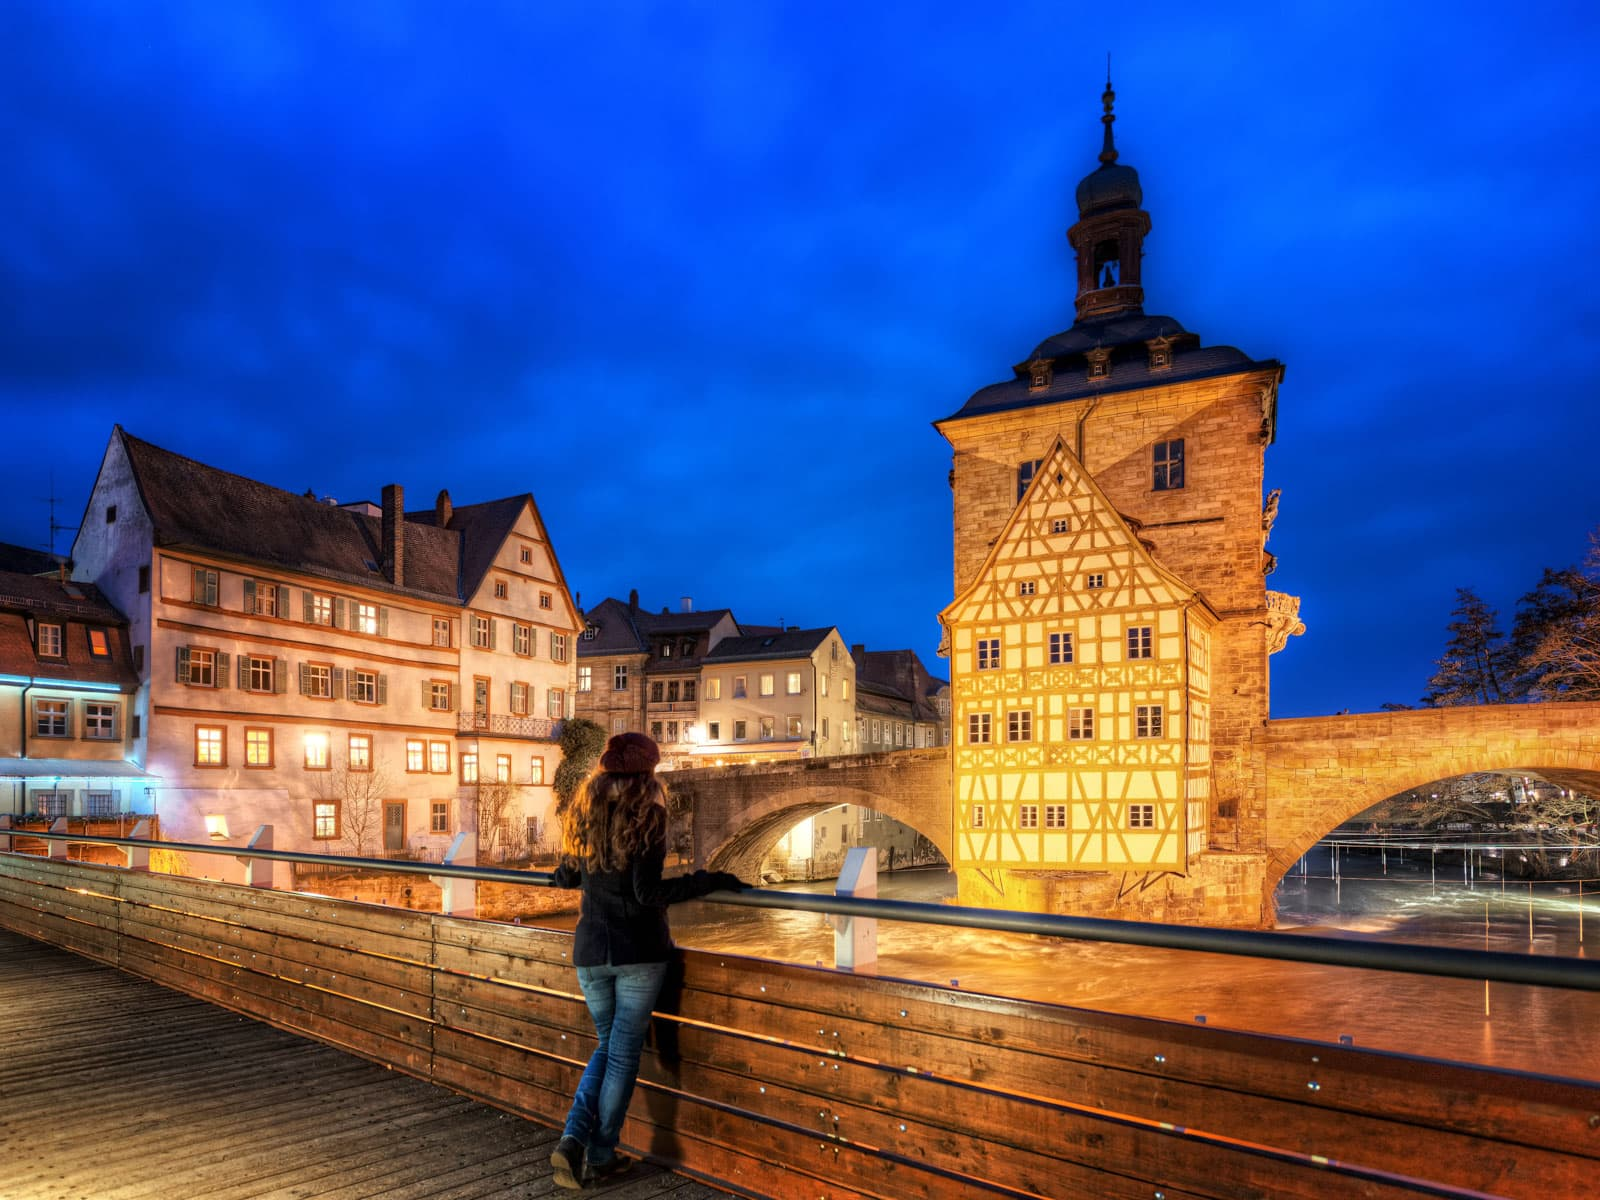 The Best View | Bamberg, Germany